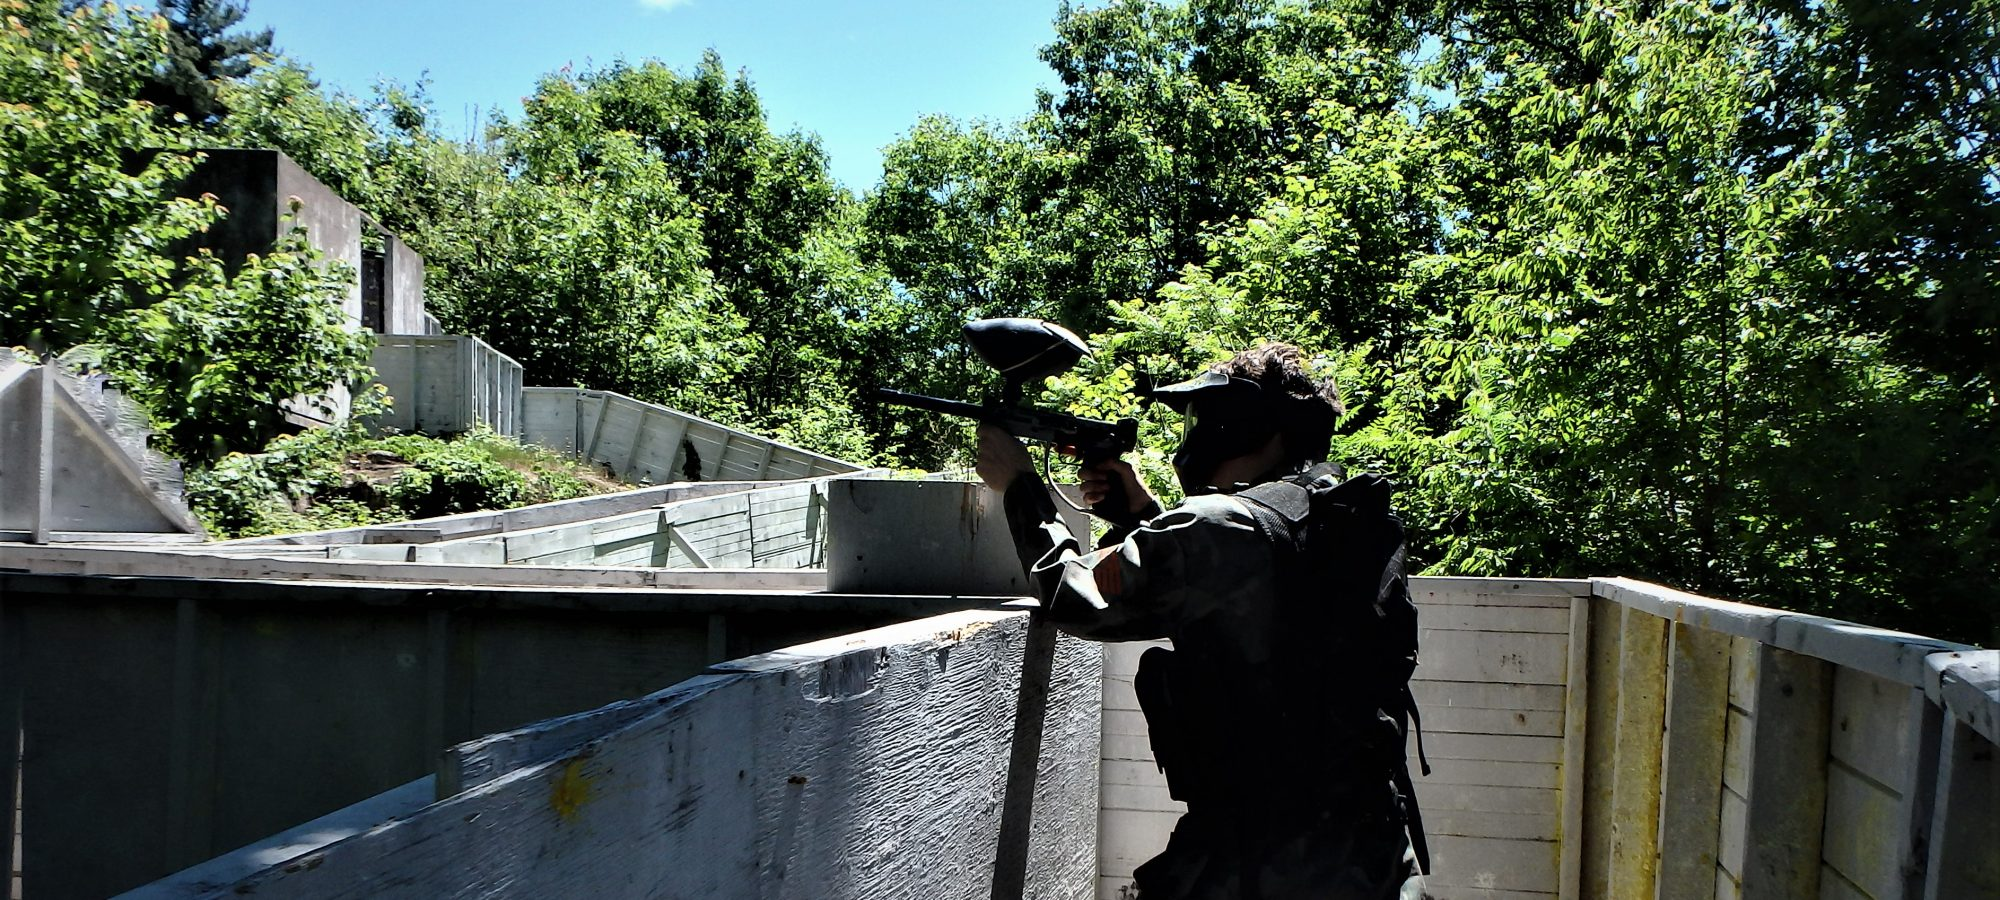 Warzone paintball - vaudreuil